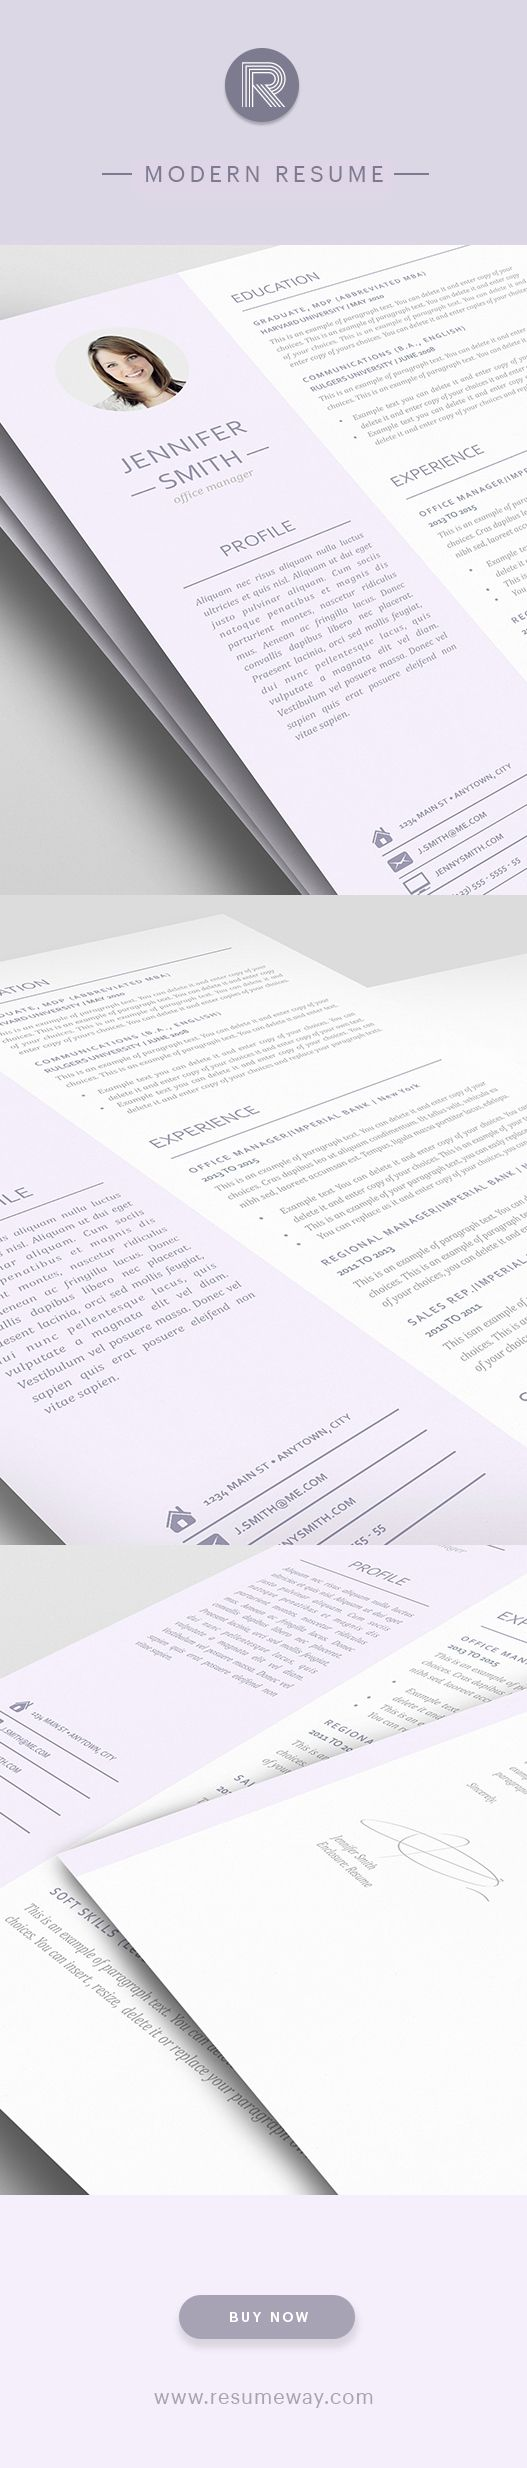 best images about modern resume templates modern resume template 110950 premium line of resume cover letter templates easy edit